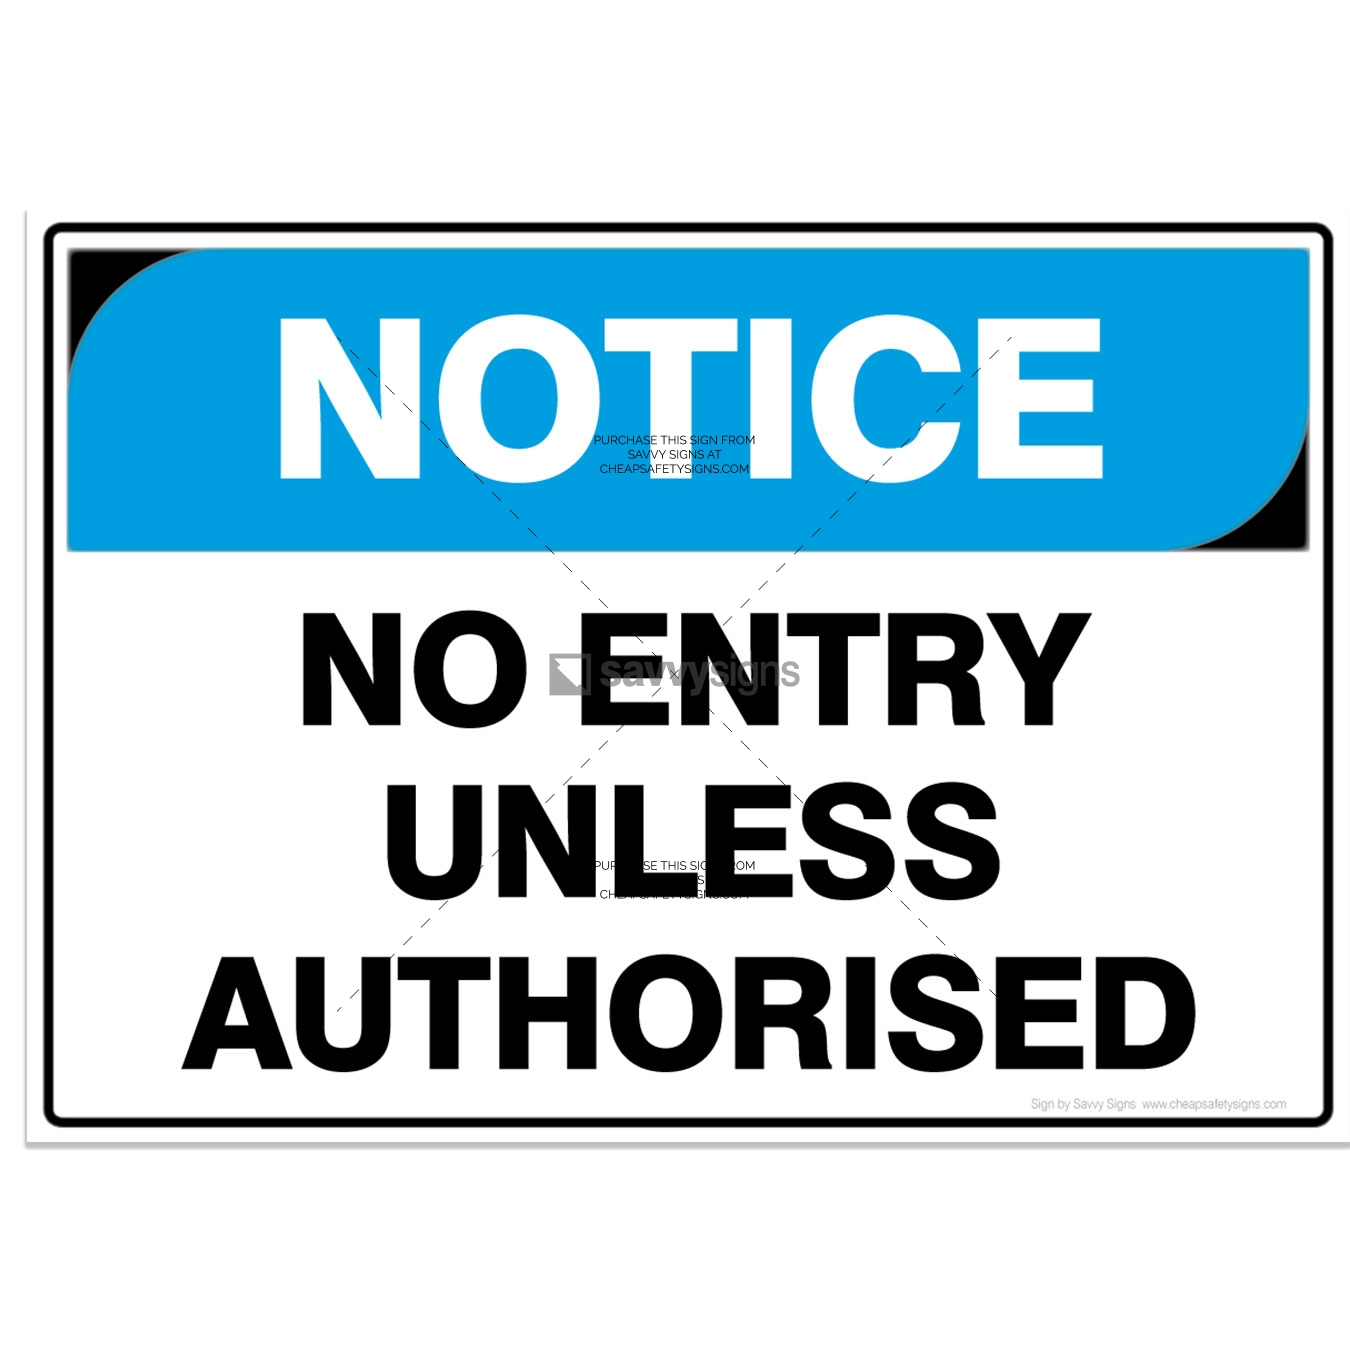 SSNOT3012-NOTICE-Workplace-Safety-Signs_Savvy-Signs_v3